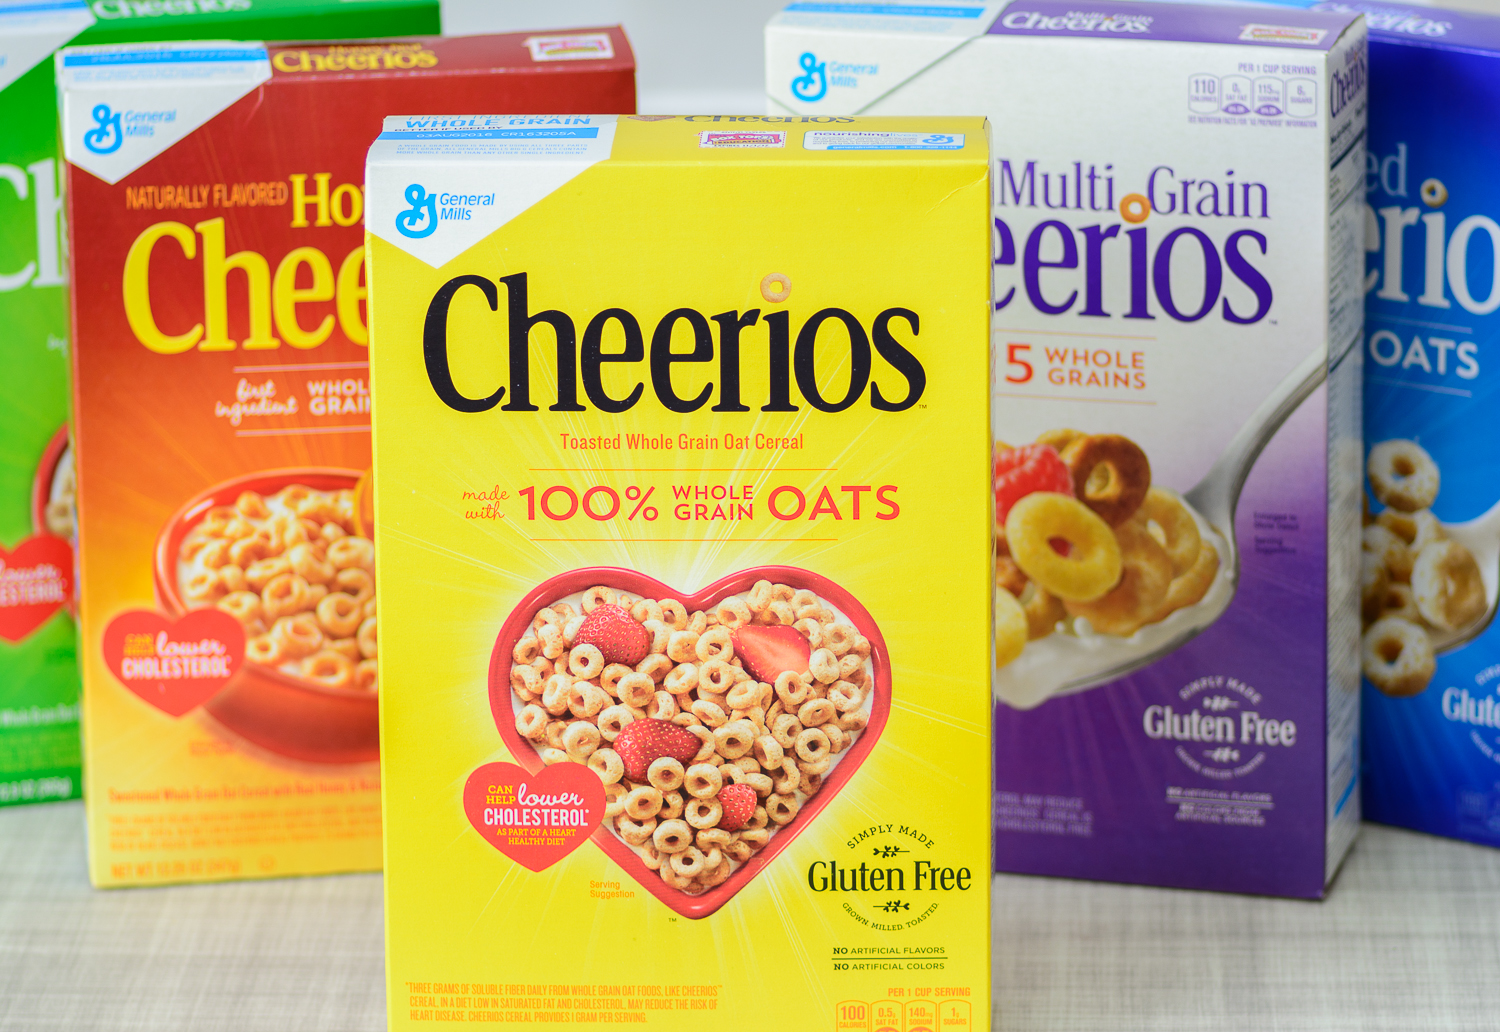 Honey Nut Cheerios Cereal Bars with